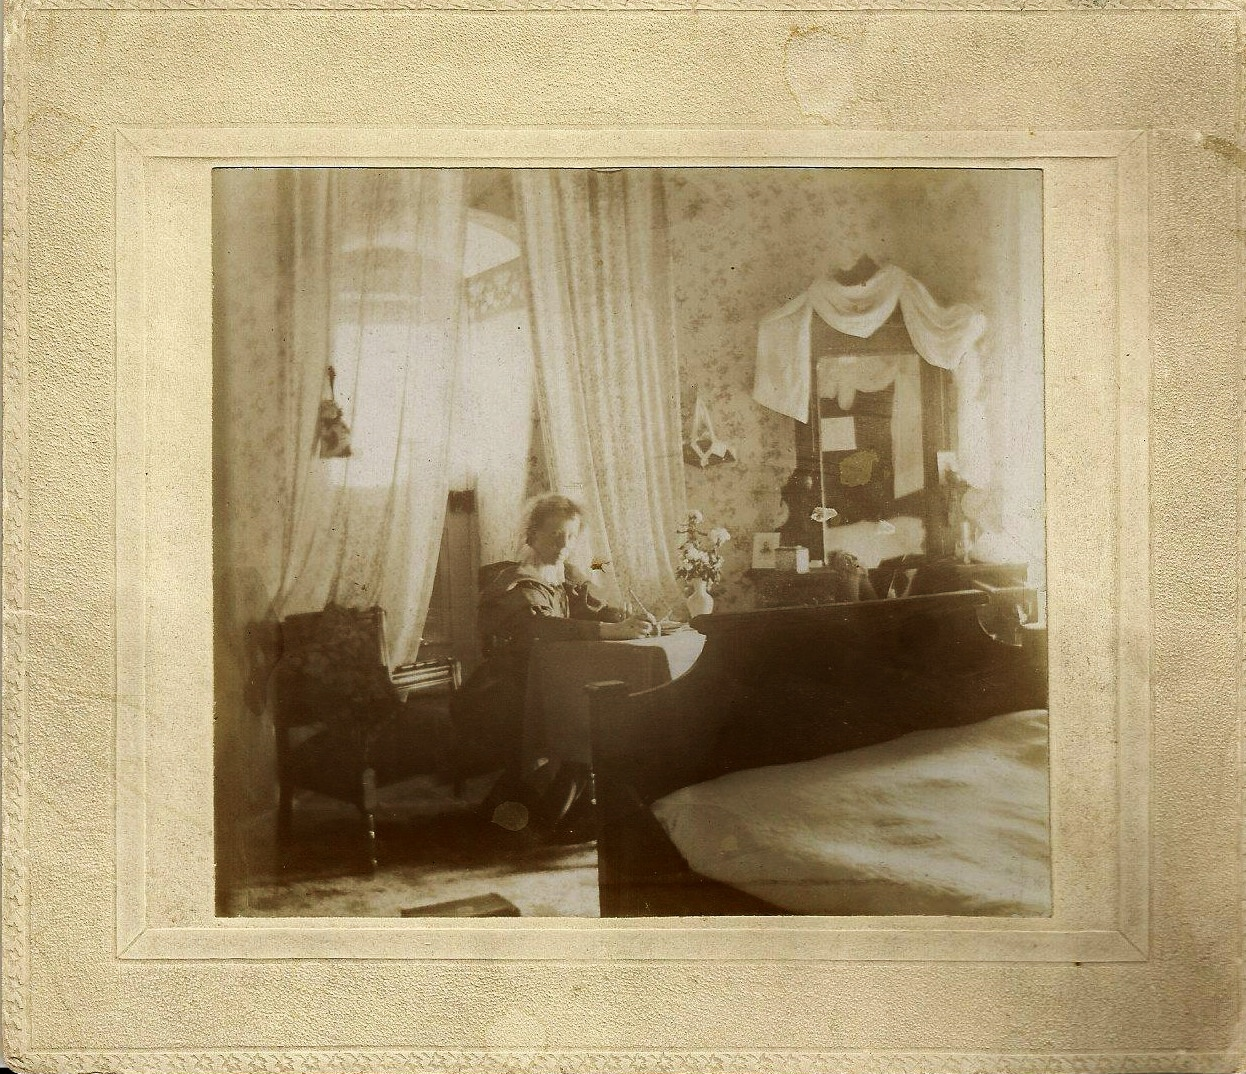 Blanche, daughter of Joseph Burgess  Pearce  in her room at Ousemore House, Norwood